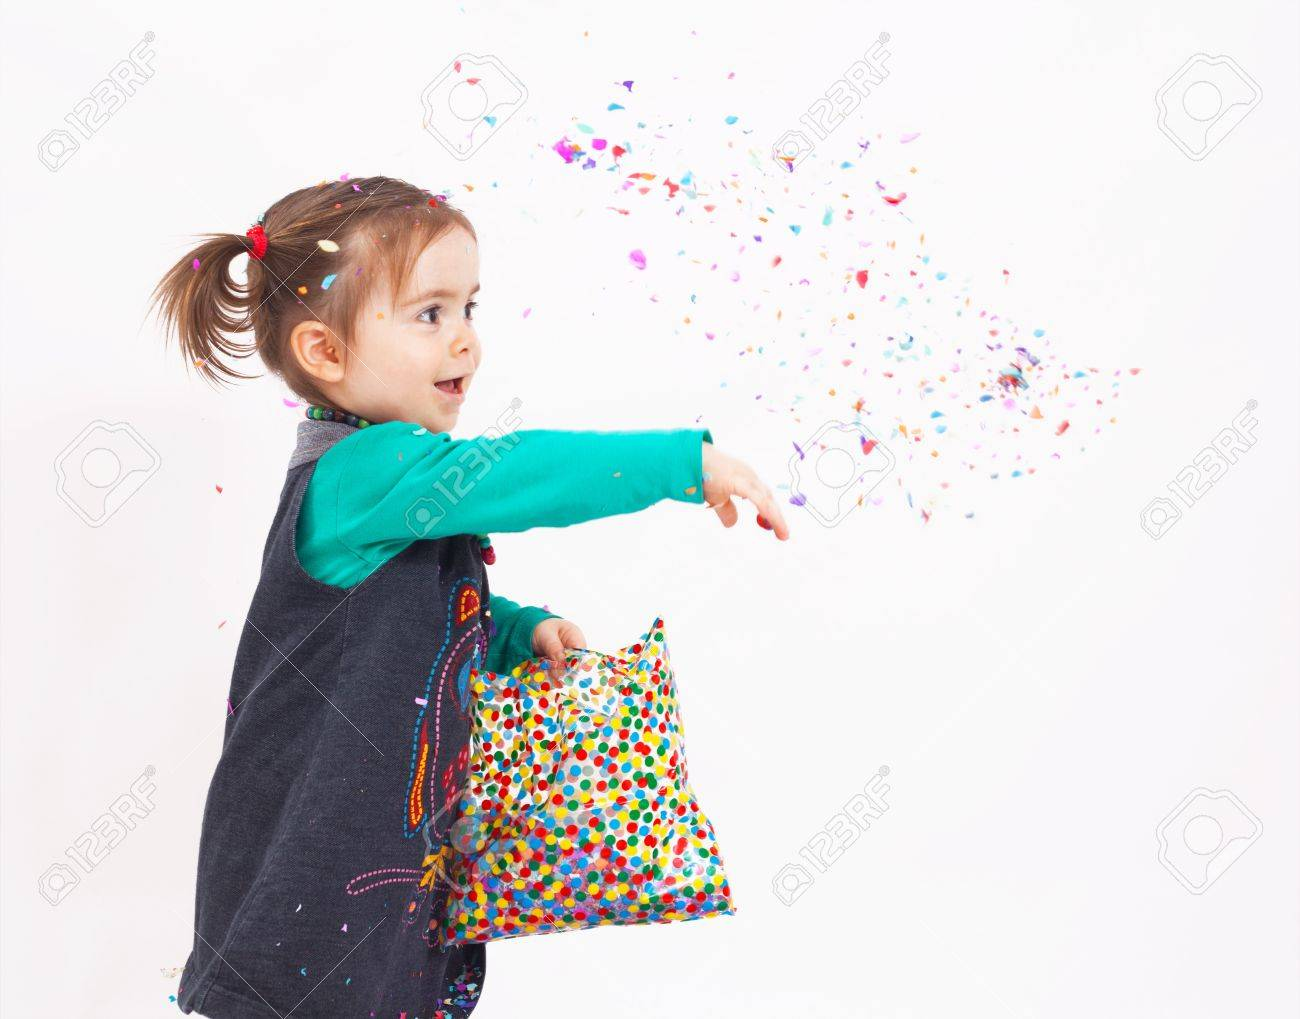 Image result for throw confetti